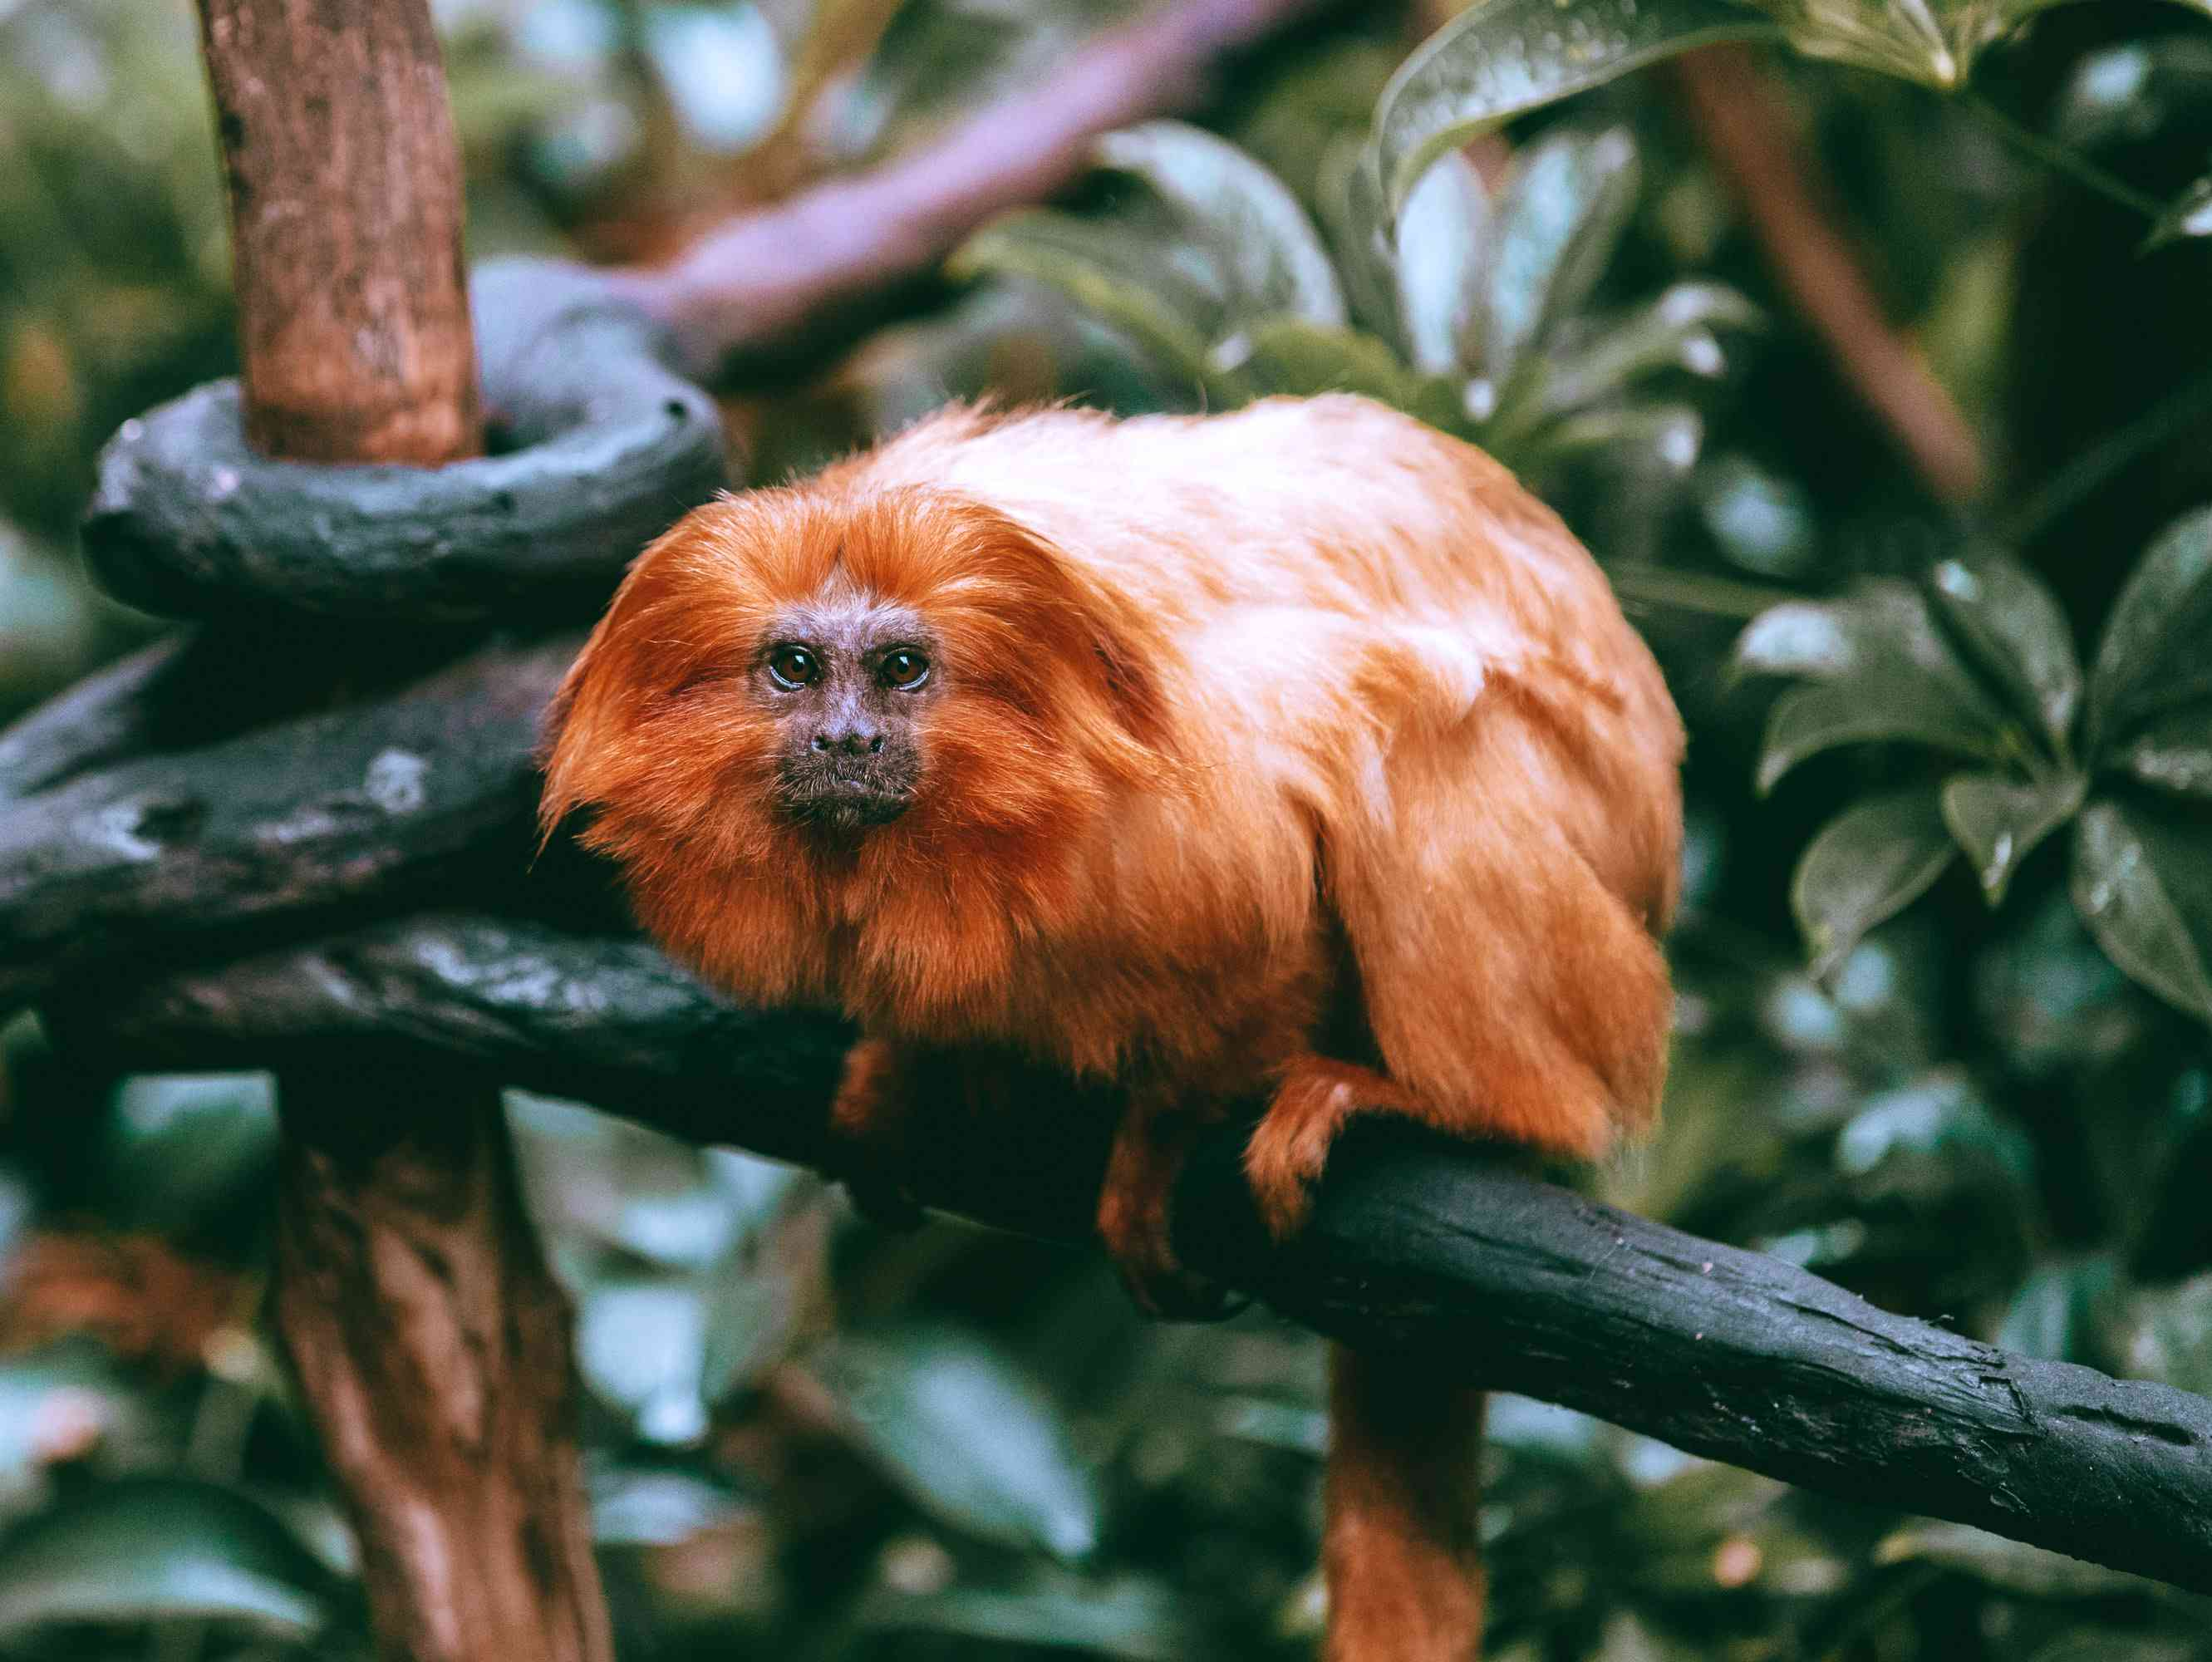 Monkey at the Auckland Zoo